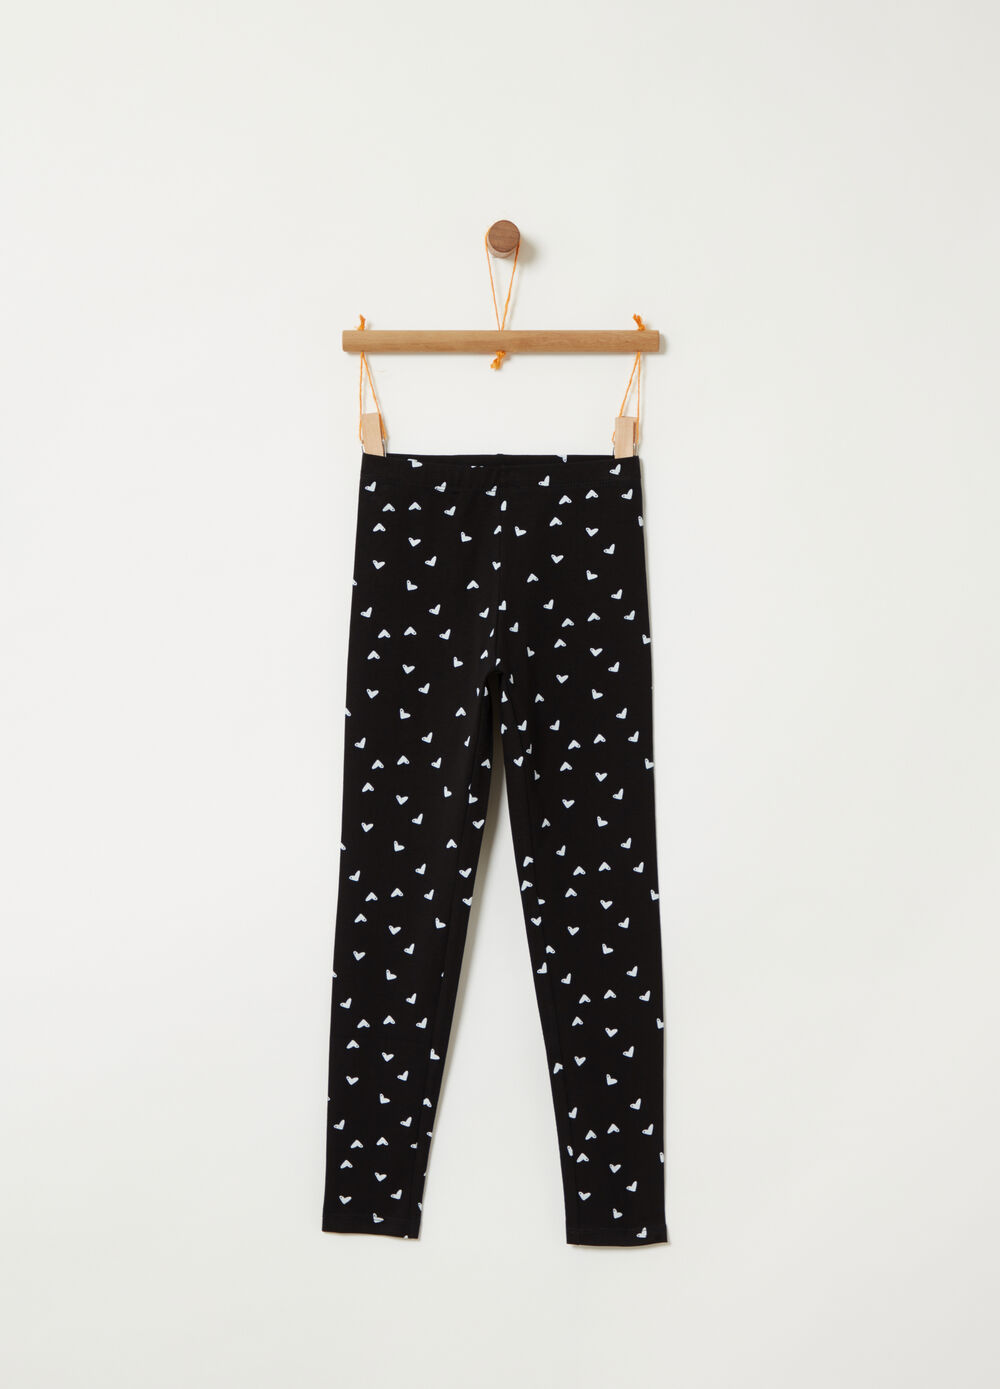 Jersey leggings with hearts print